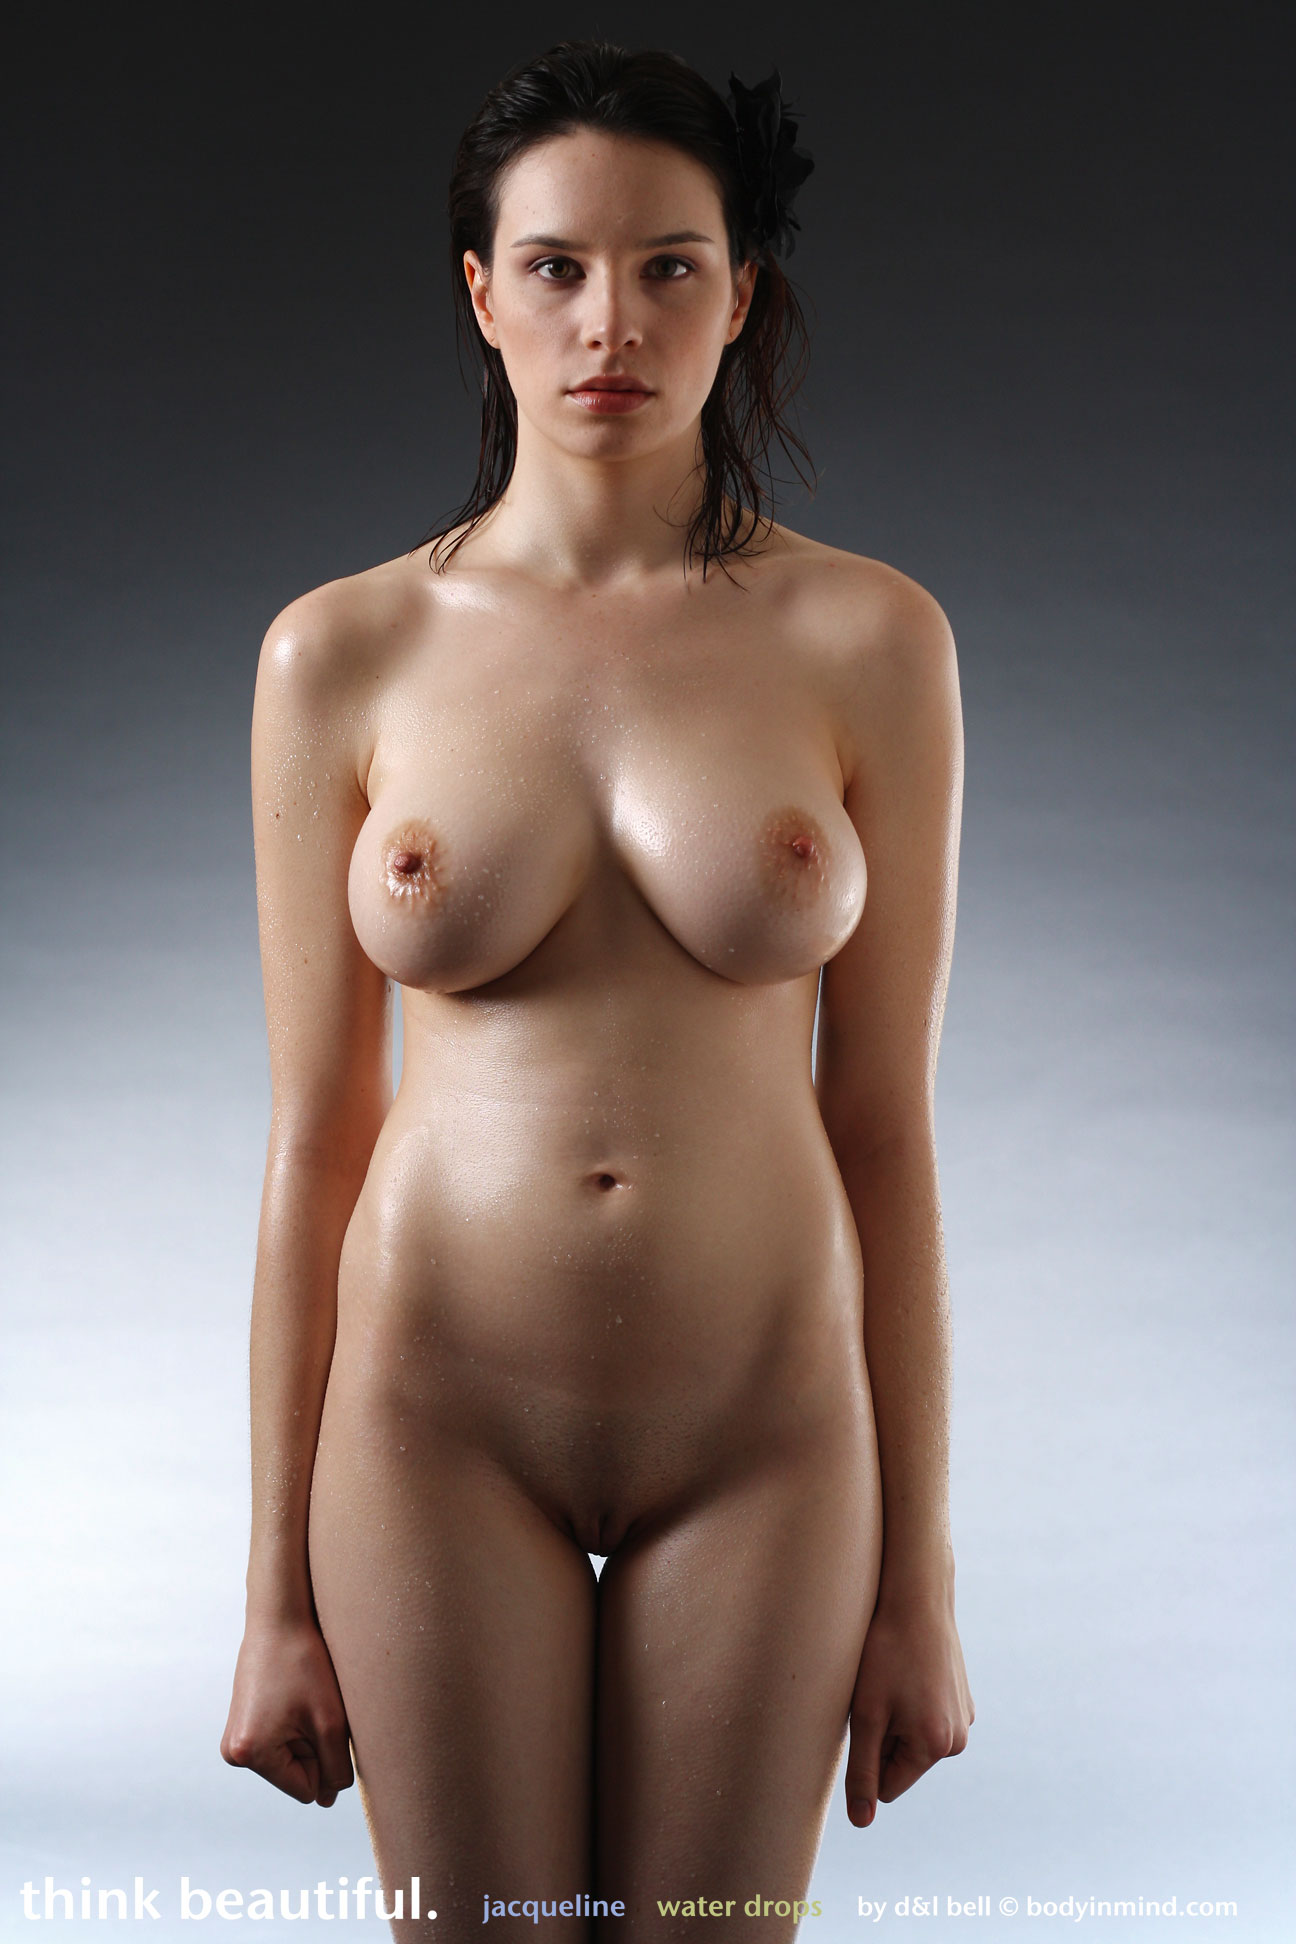 patrick-nude-pictures-mixed-girl